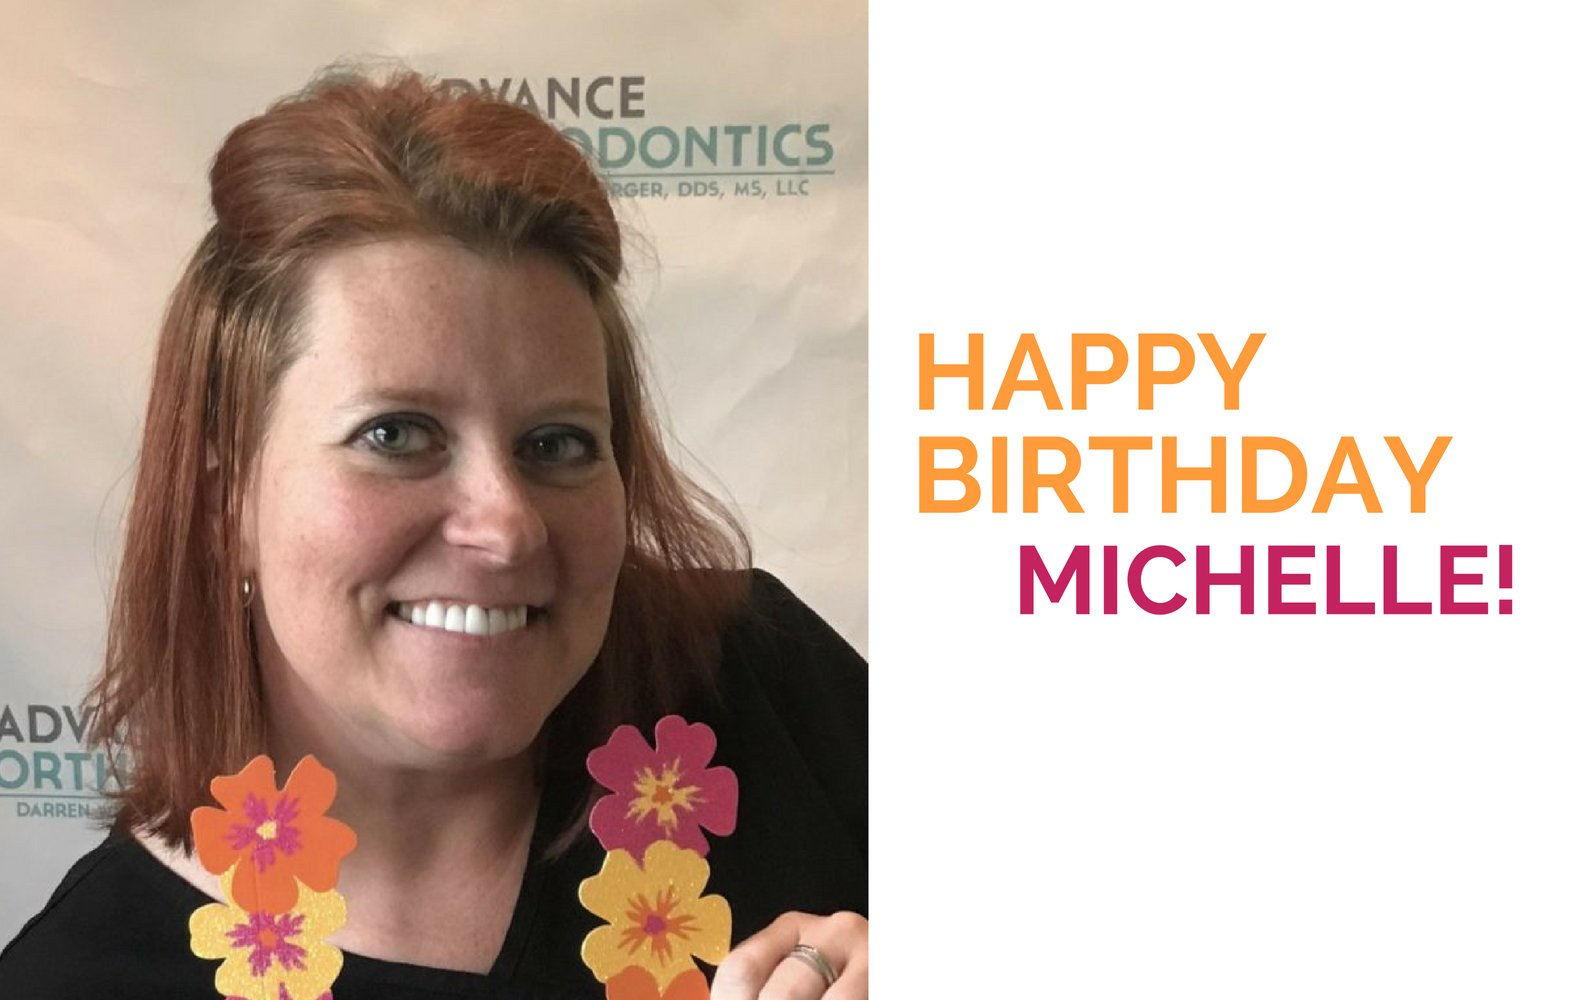 List-19 Happy Birthday, Michelle  Braces in Columbia, Missouri - Advance Orthodontics, Columbia Missouri Braces